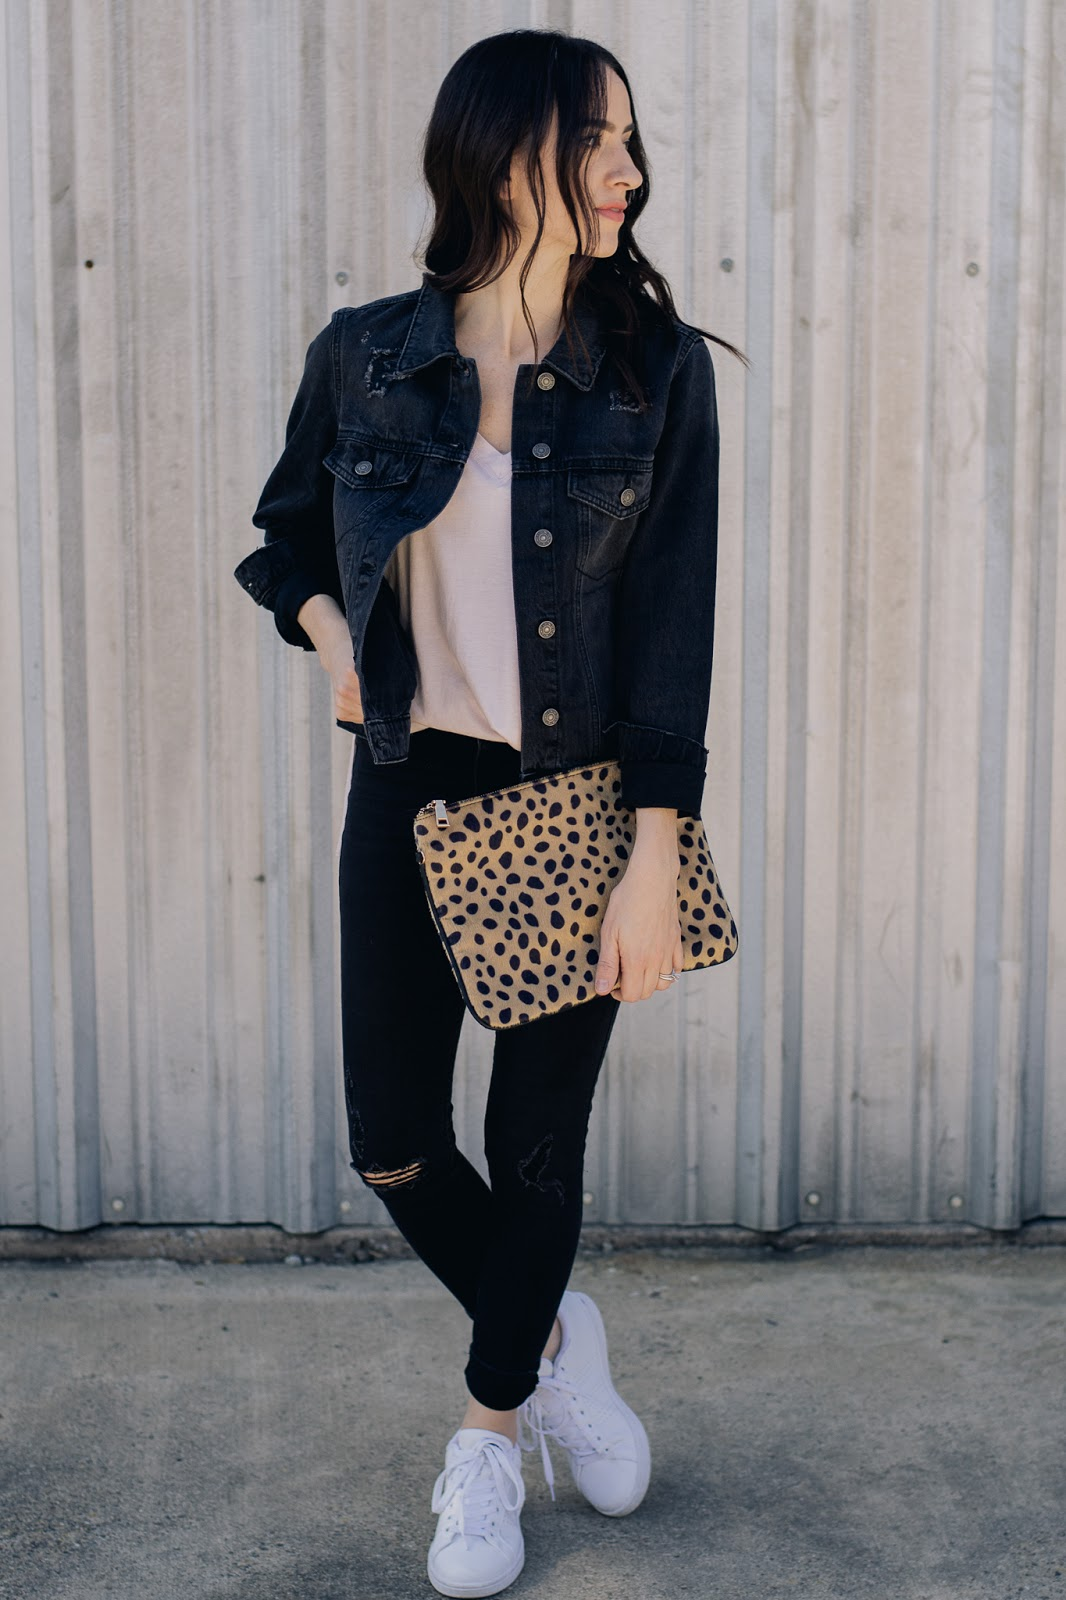 Casual weekend style in black distressed denim jacket and white sneakers